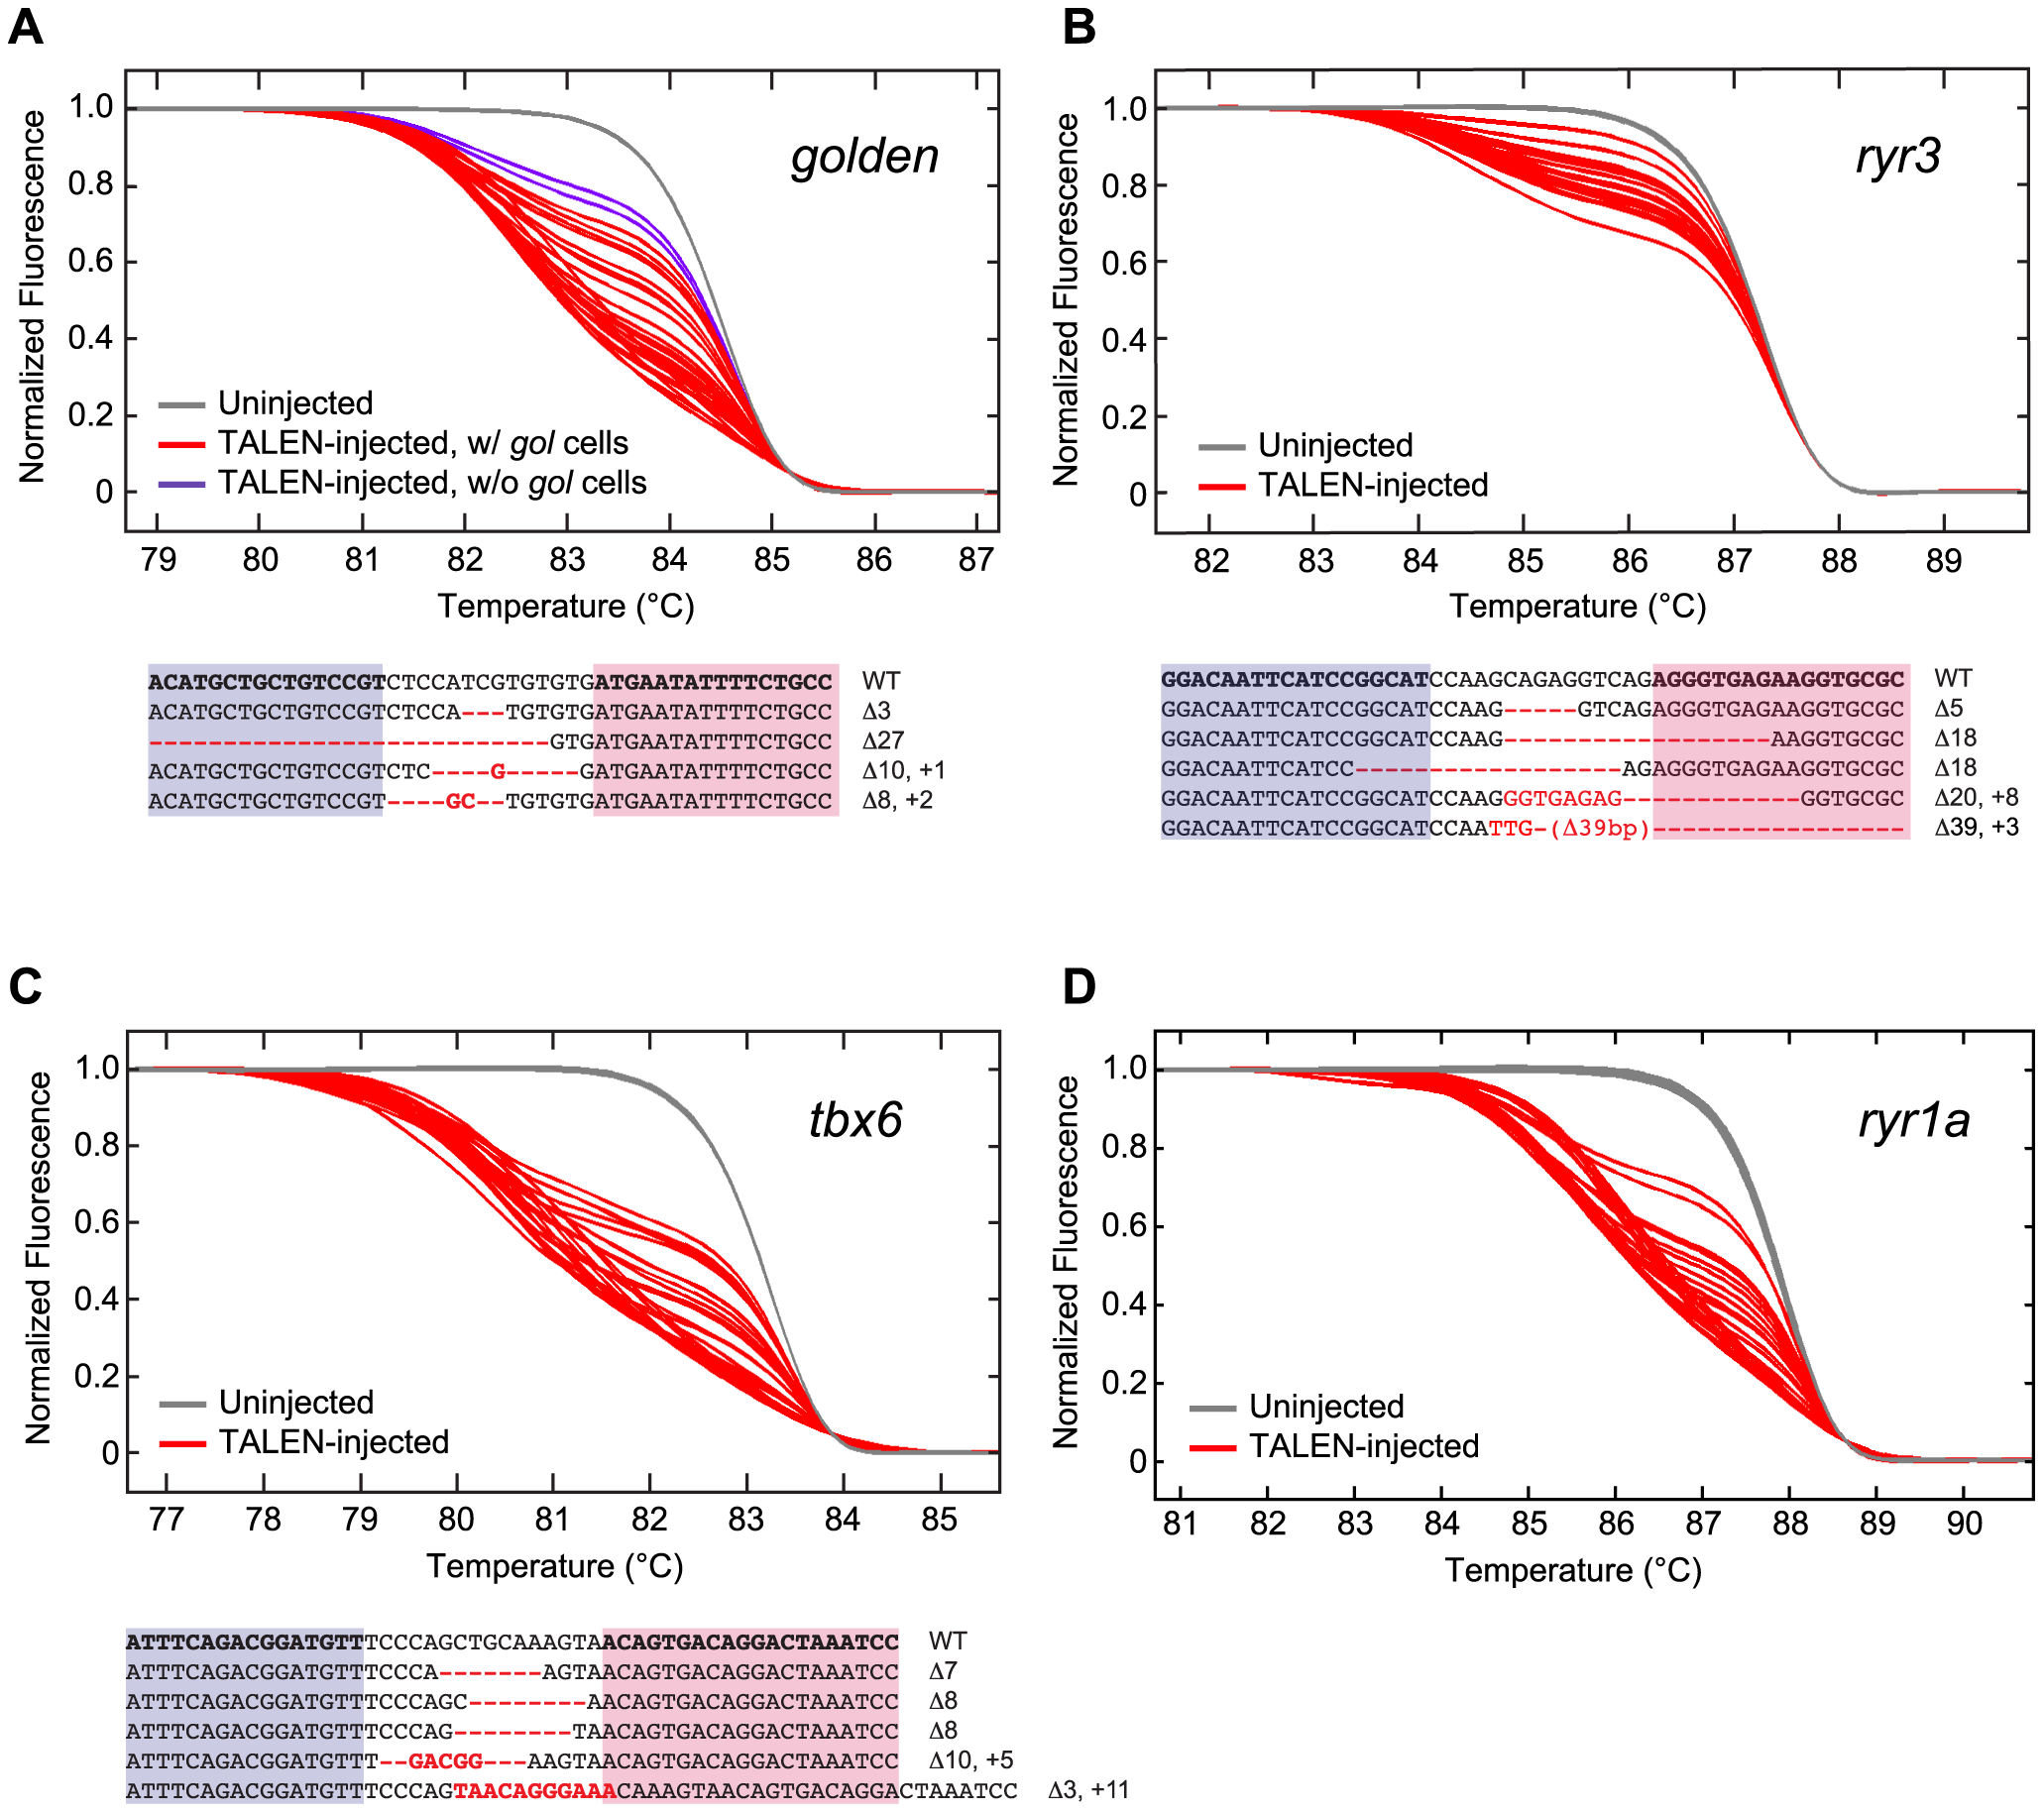 Induction of somatic mutations with TALENs.